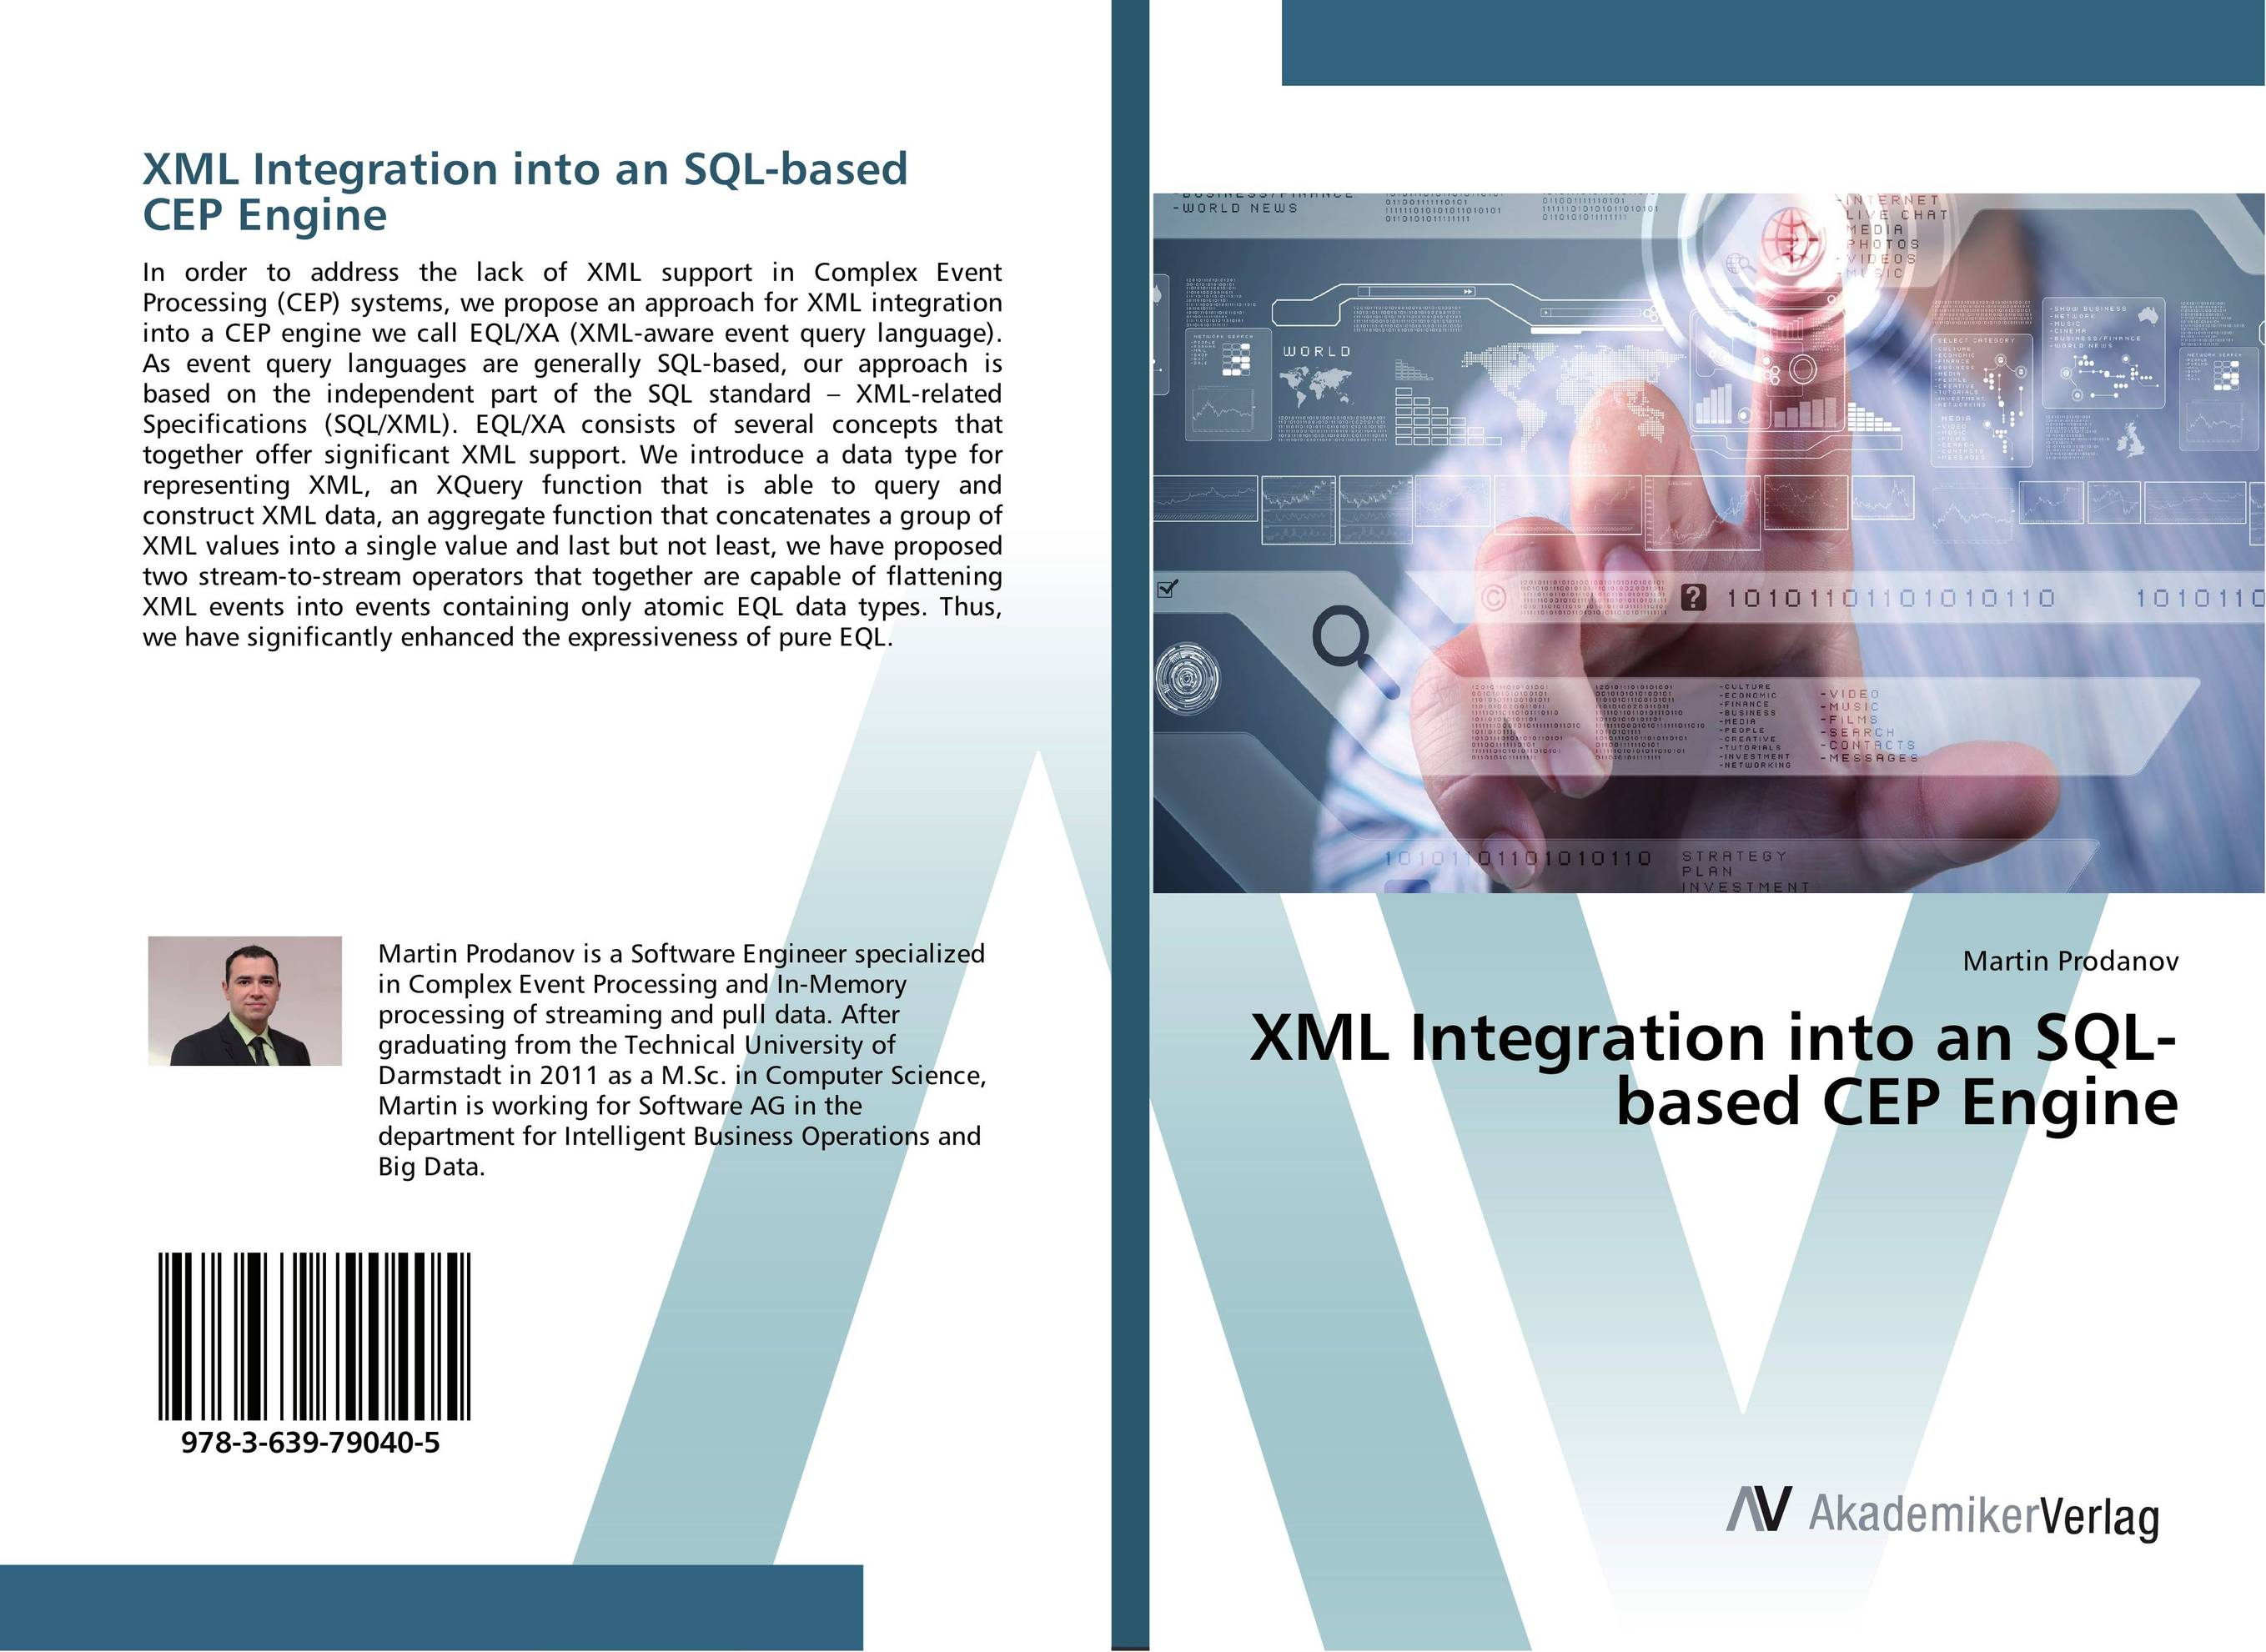 XML Integration into an SQL-based CEP Engine sitemap 31 xml